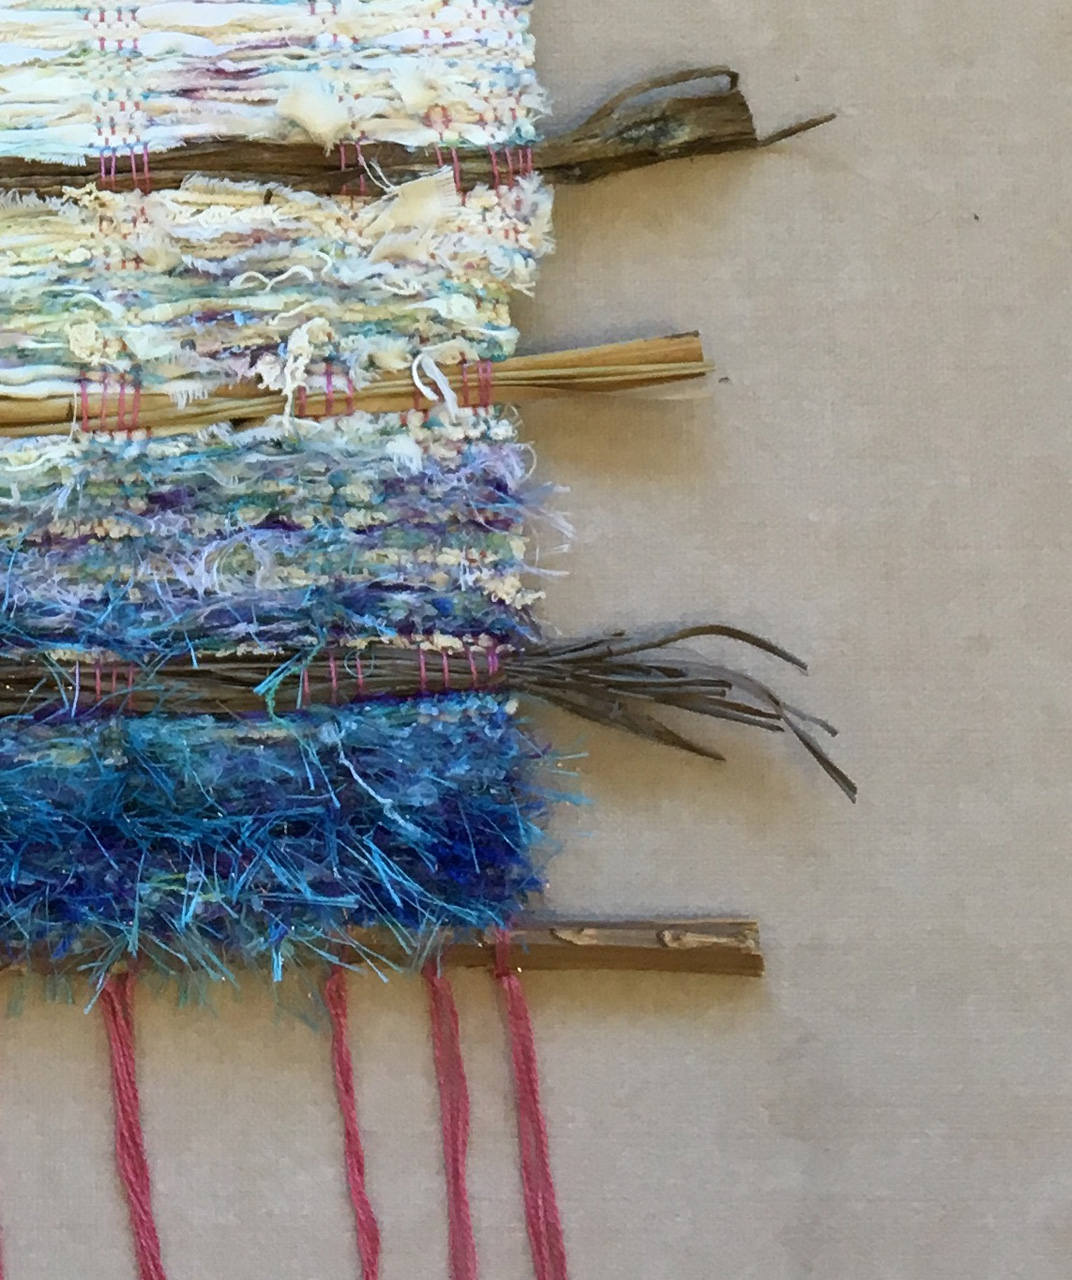 Winter Blue Detail by Ipo Kudlich weaving